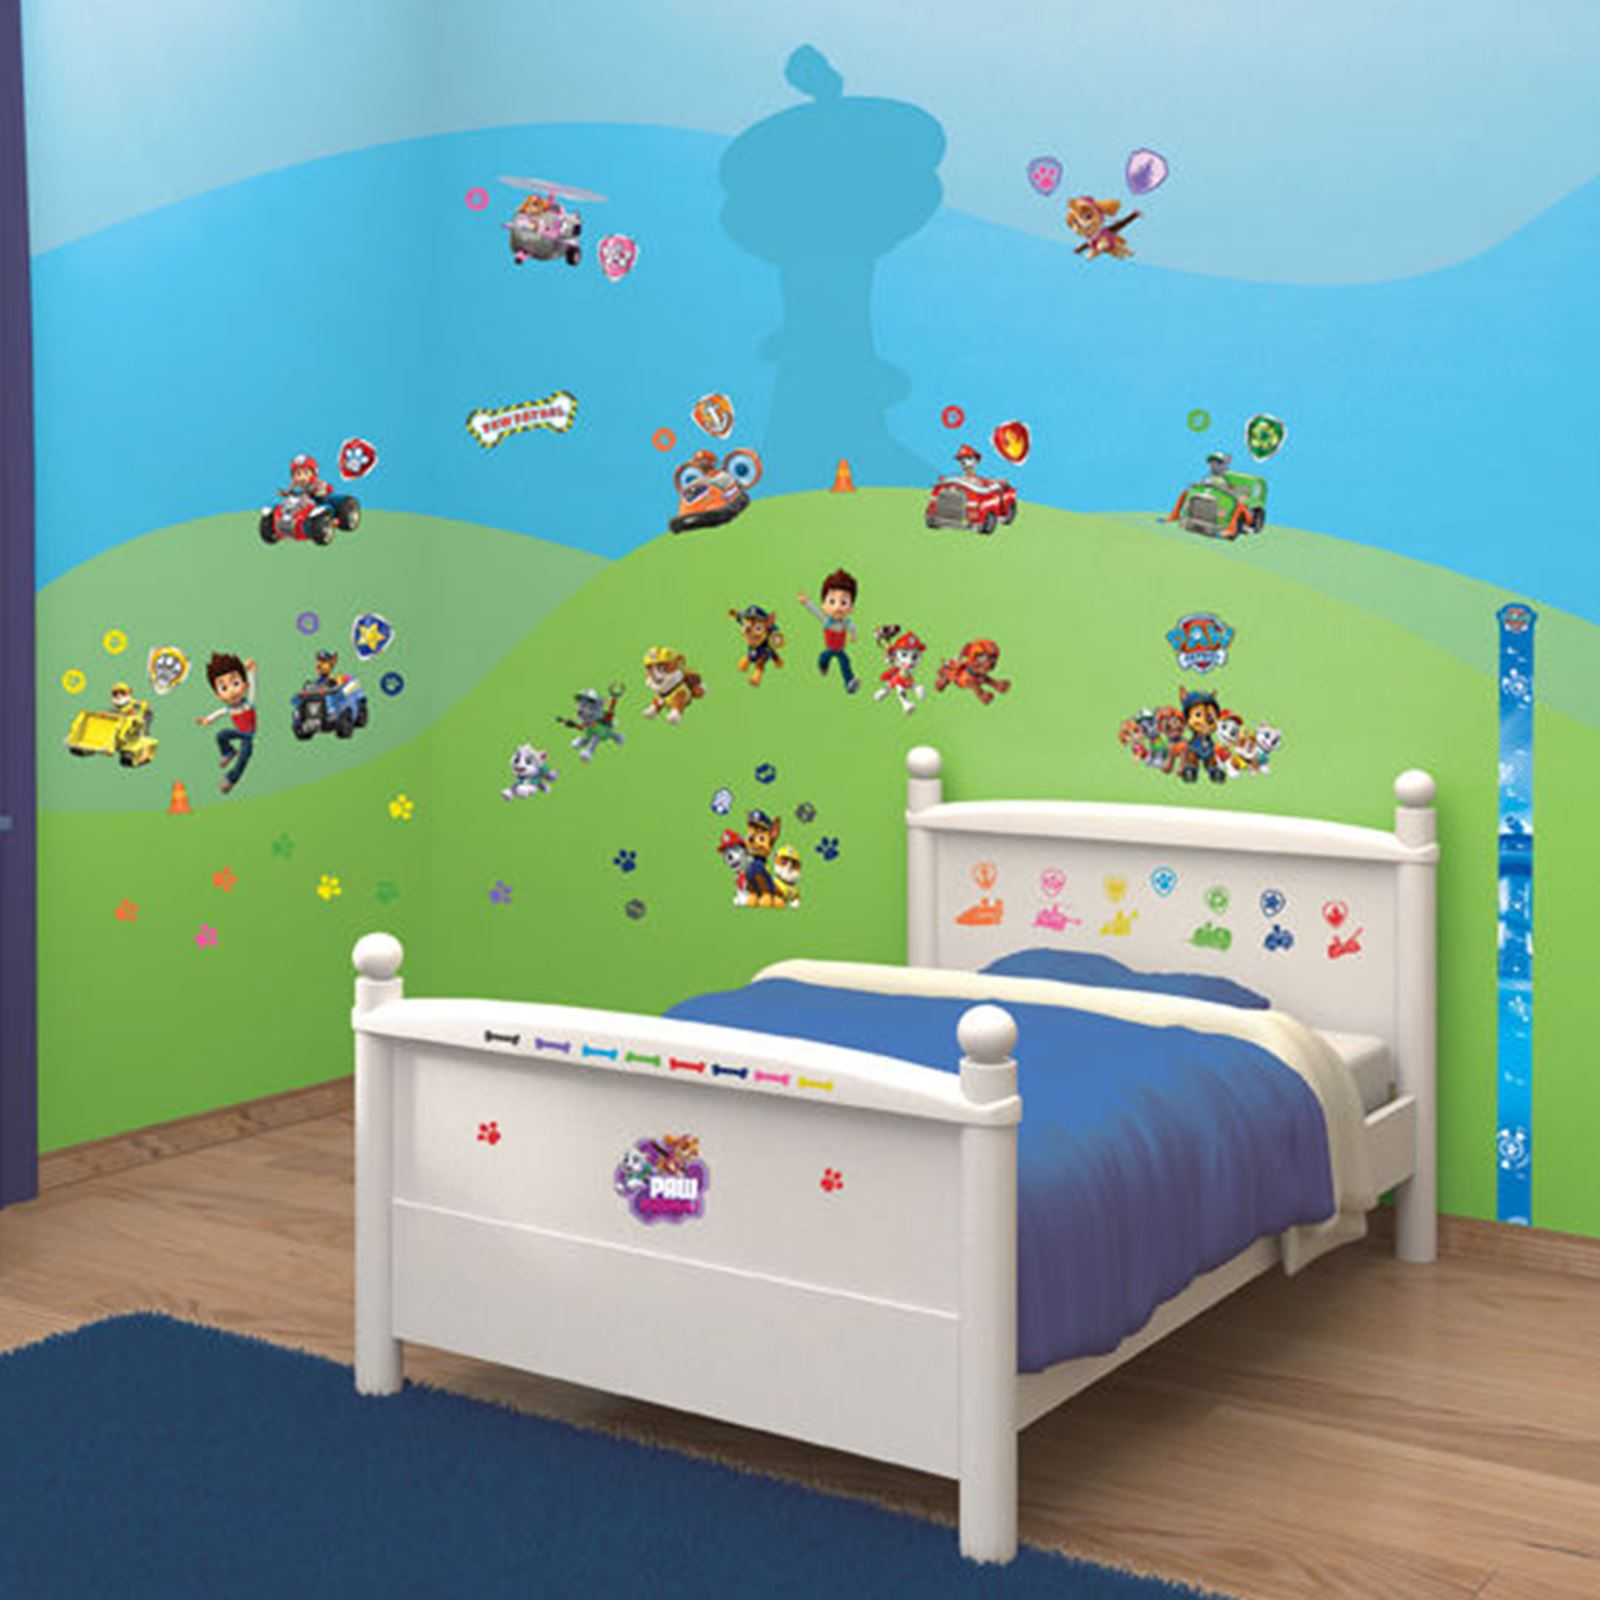 Walltastic autocollant mural ensembles chambre d 39 enfant au for Decor chambre enfant